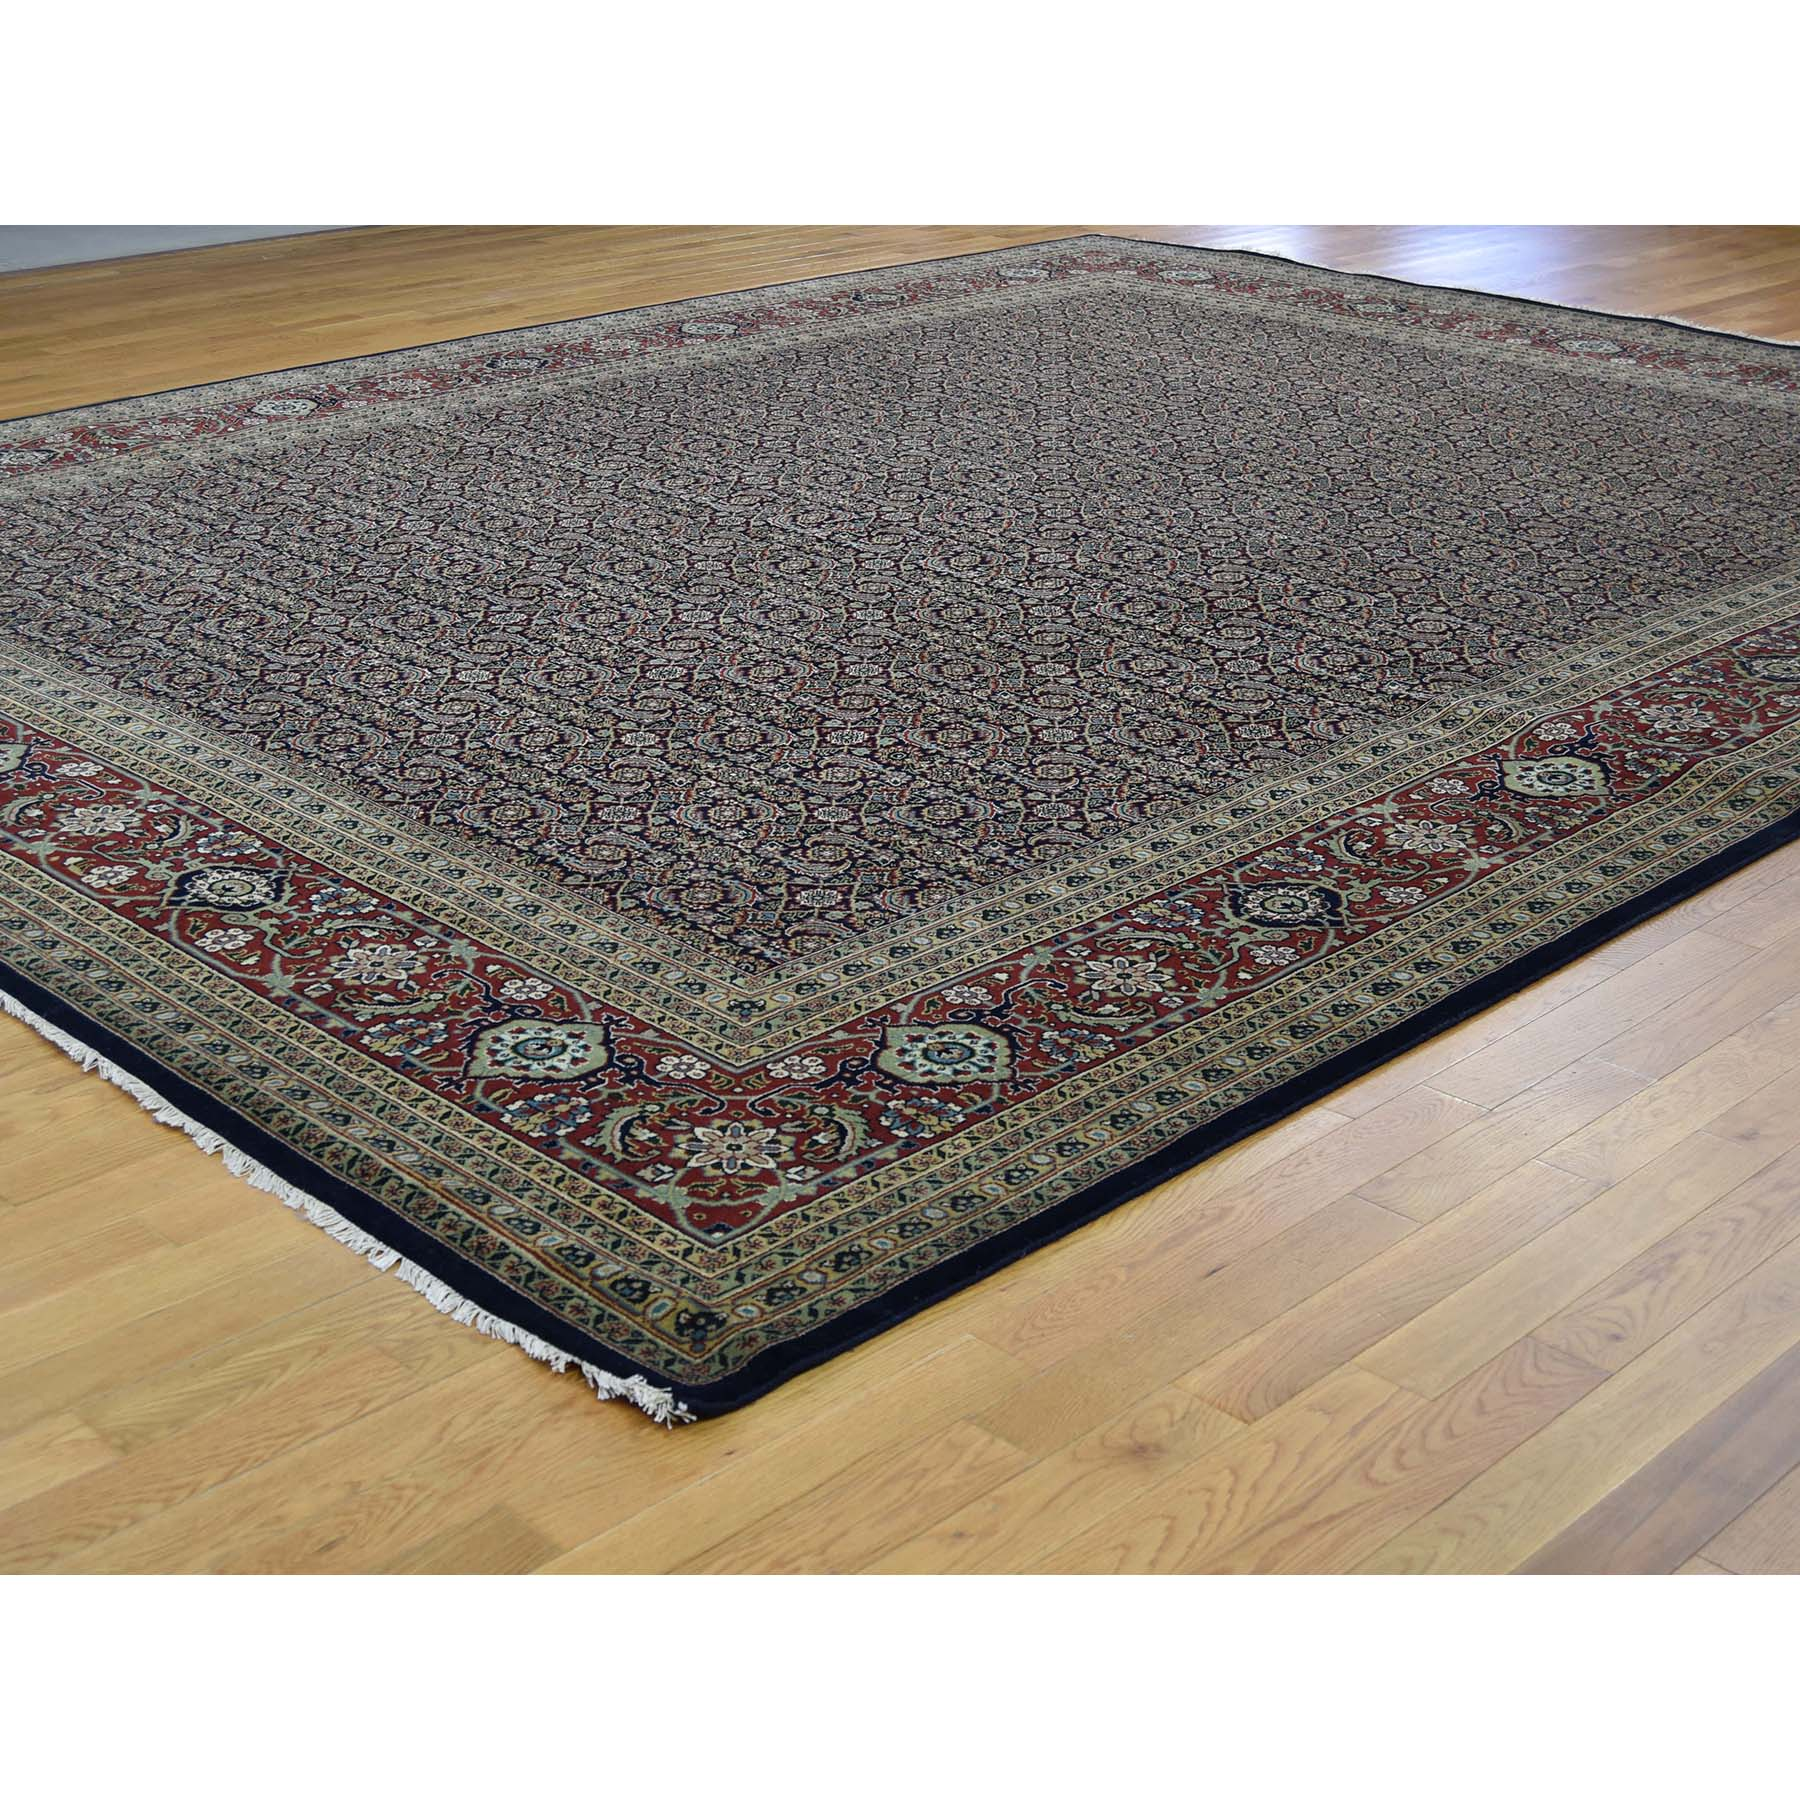 11-10 x15- Hand-Knotted Herati All Over Design Pure Wool Oversize Oriental Rug